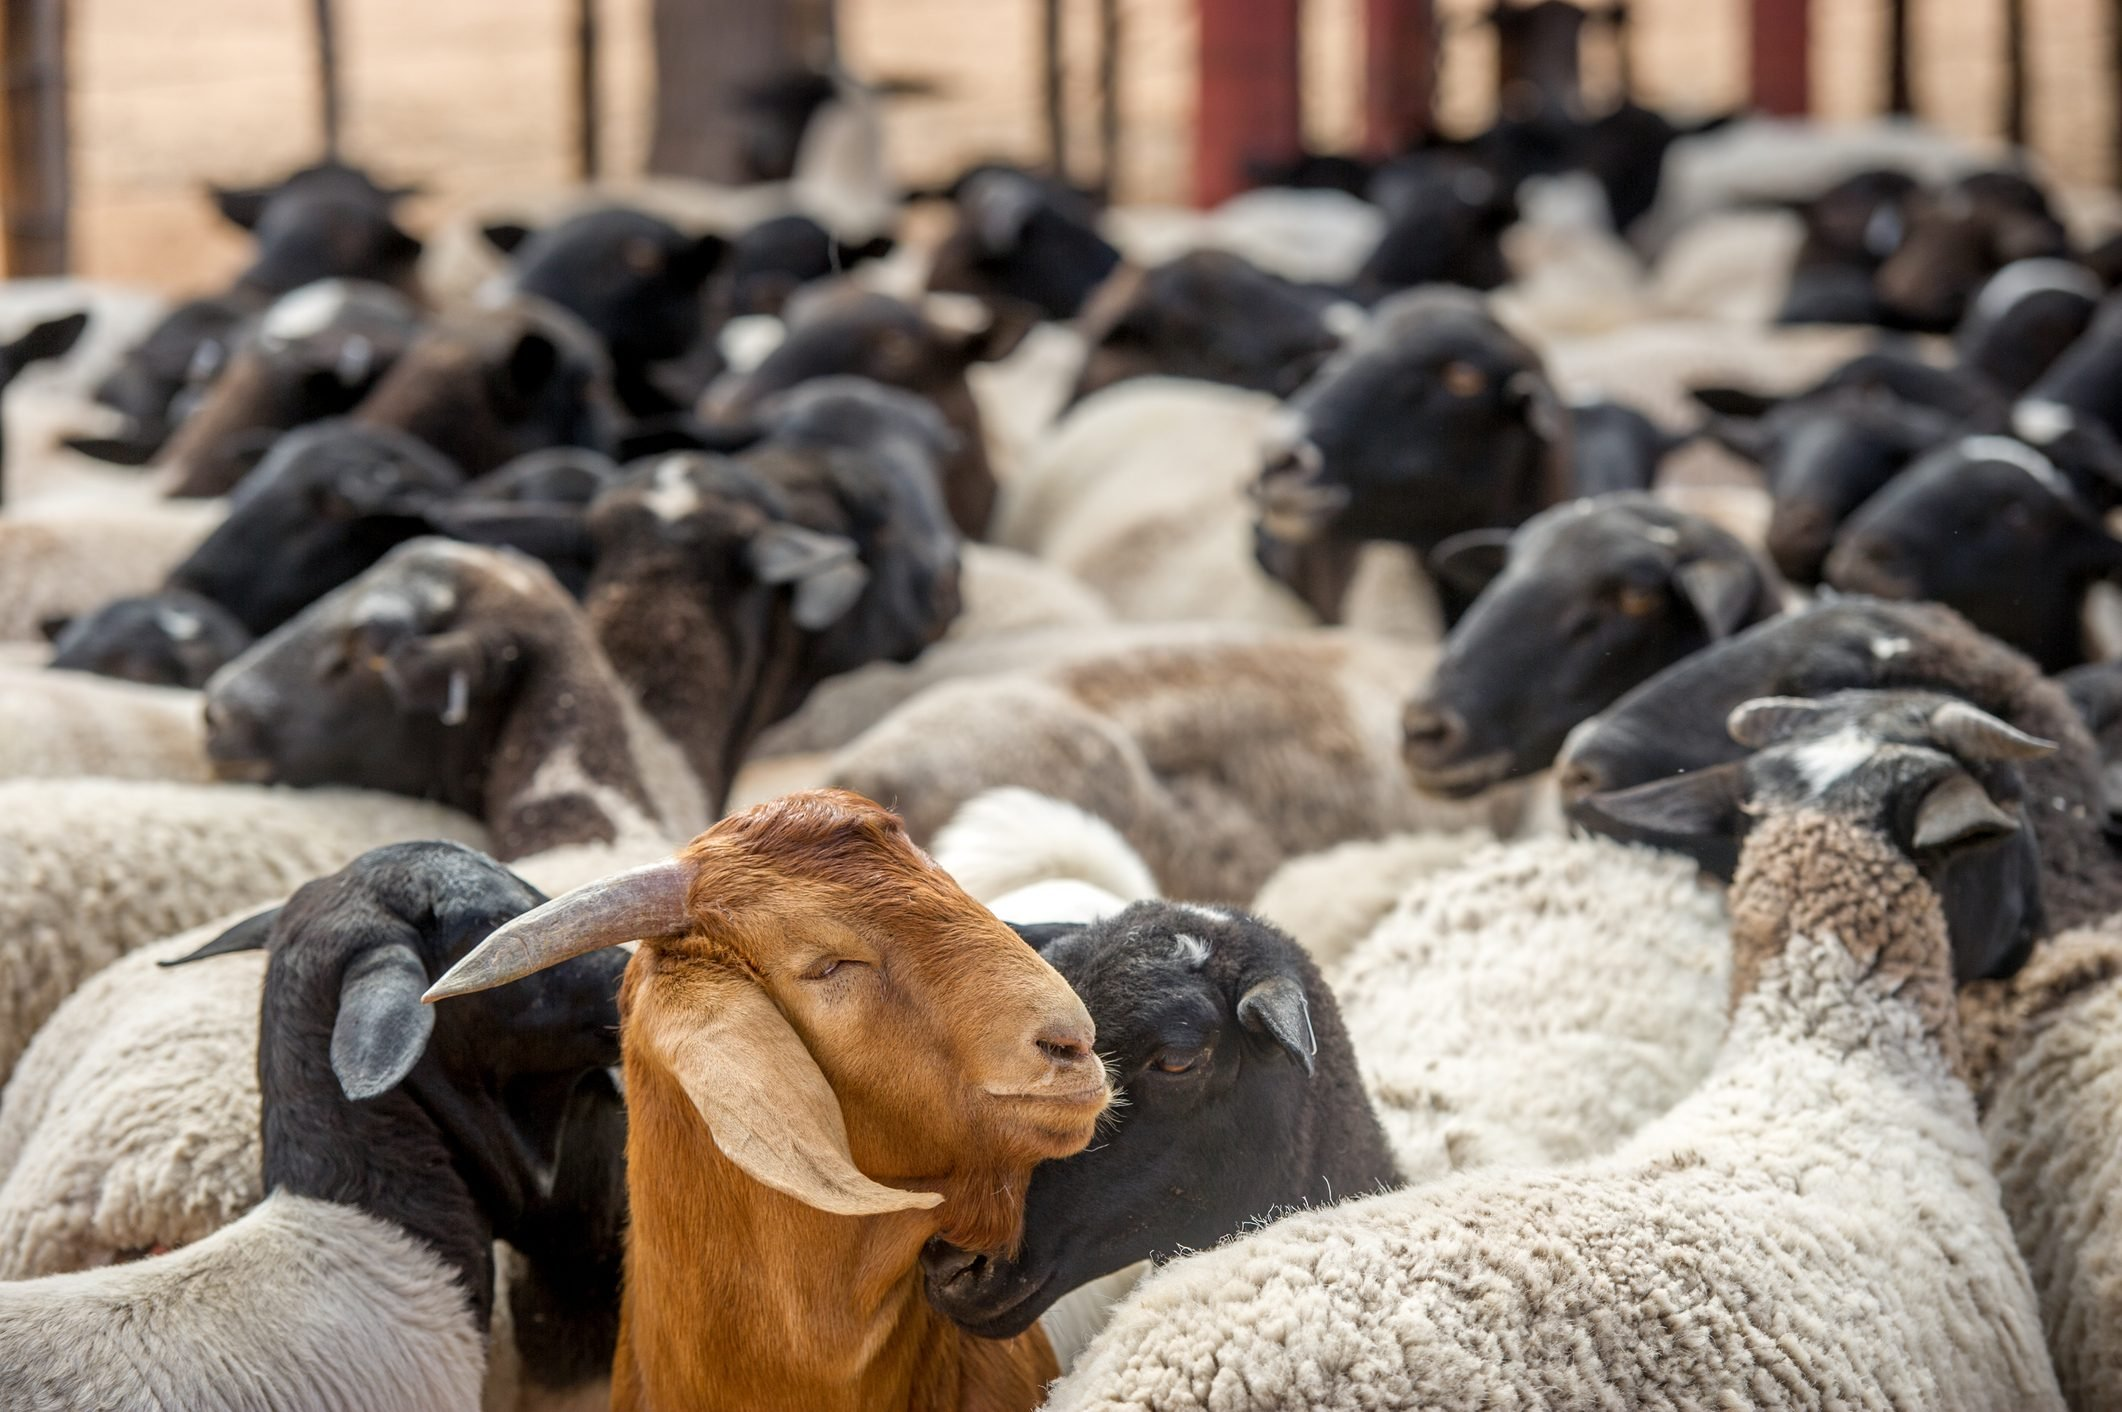 Out of place goat